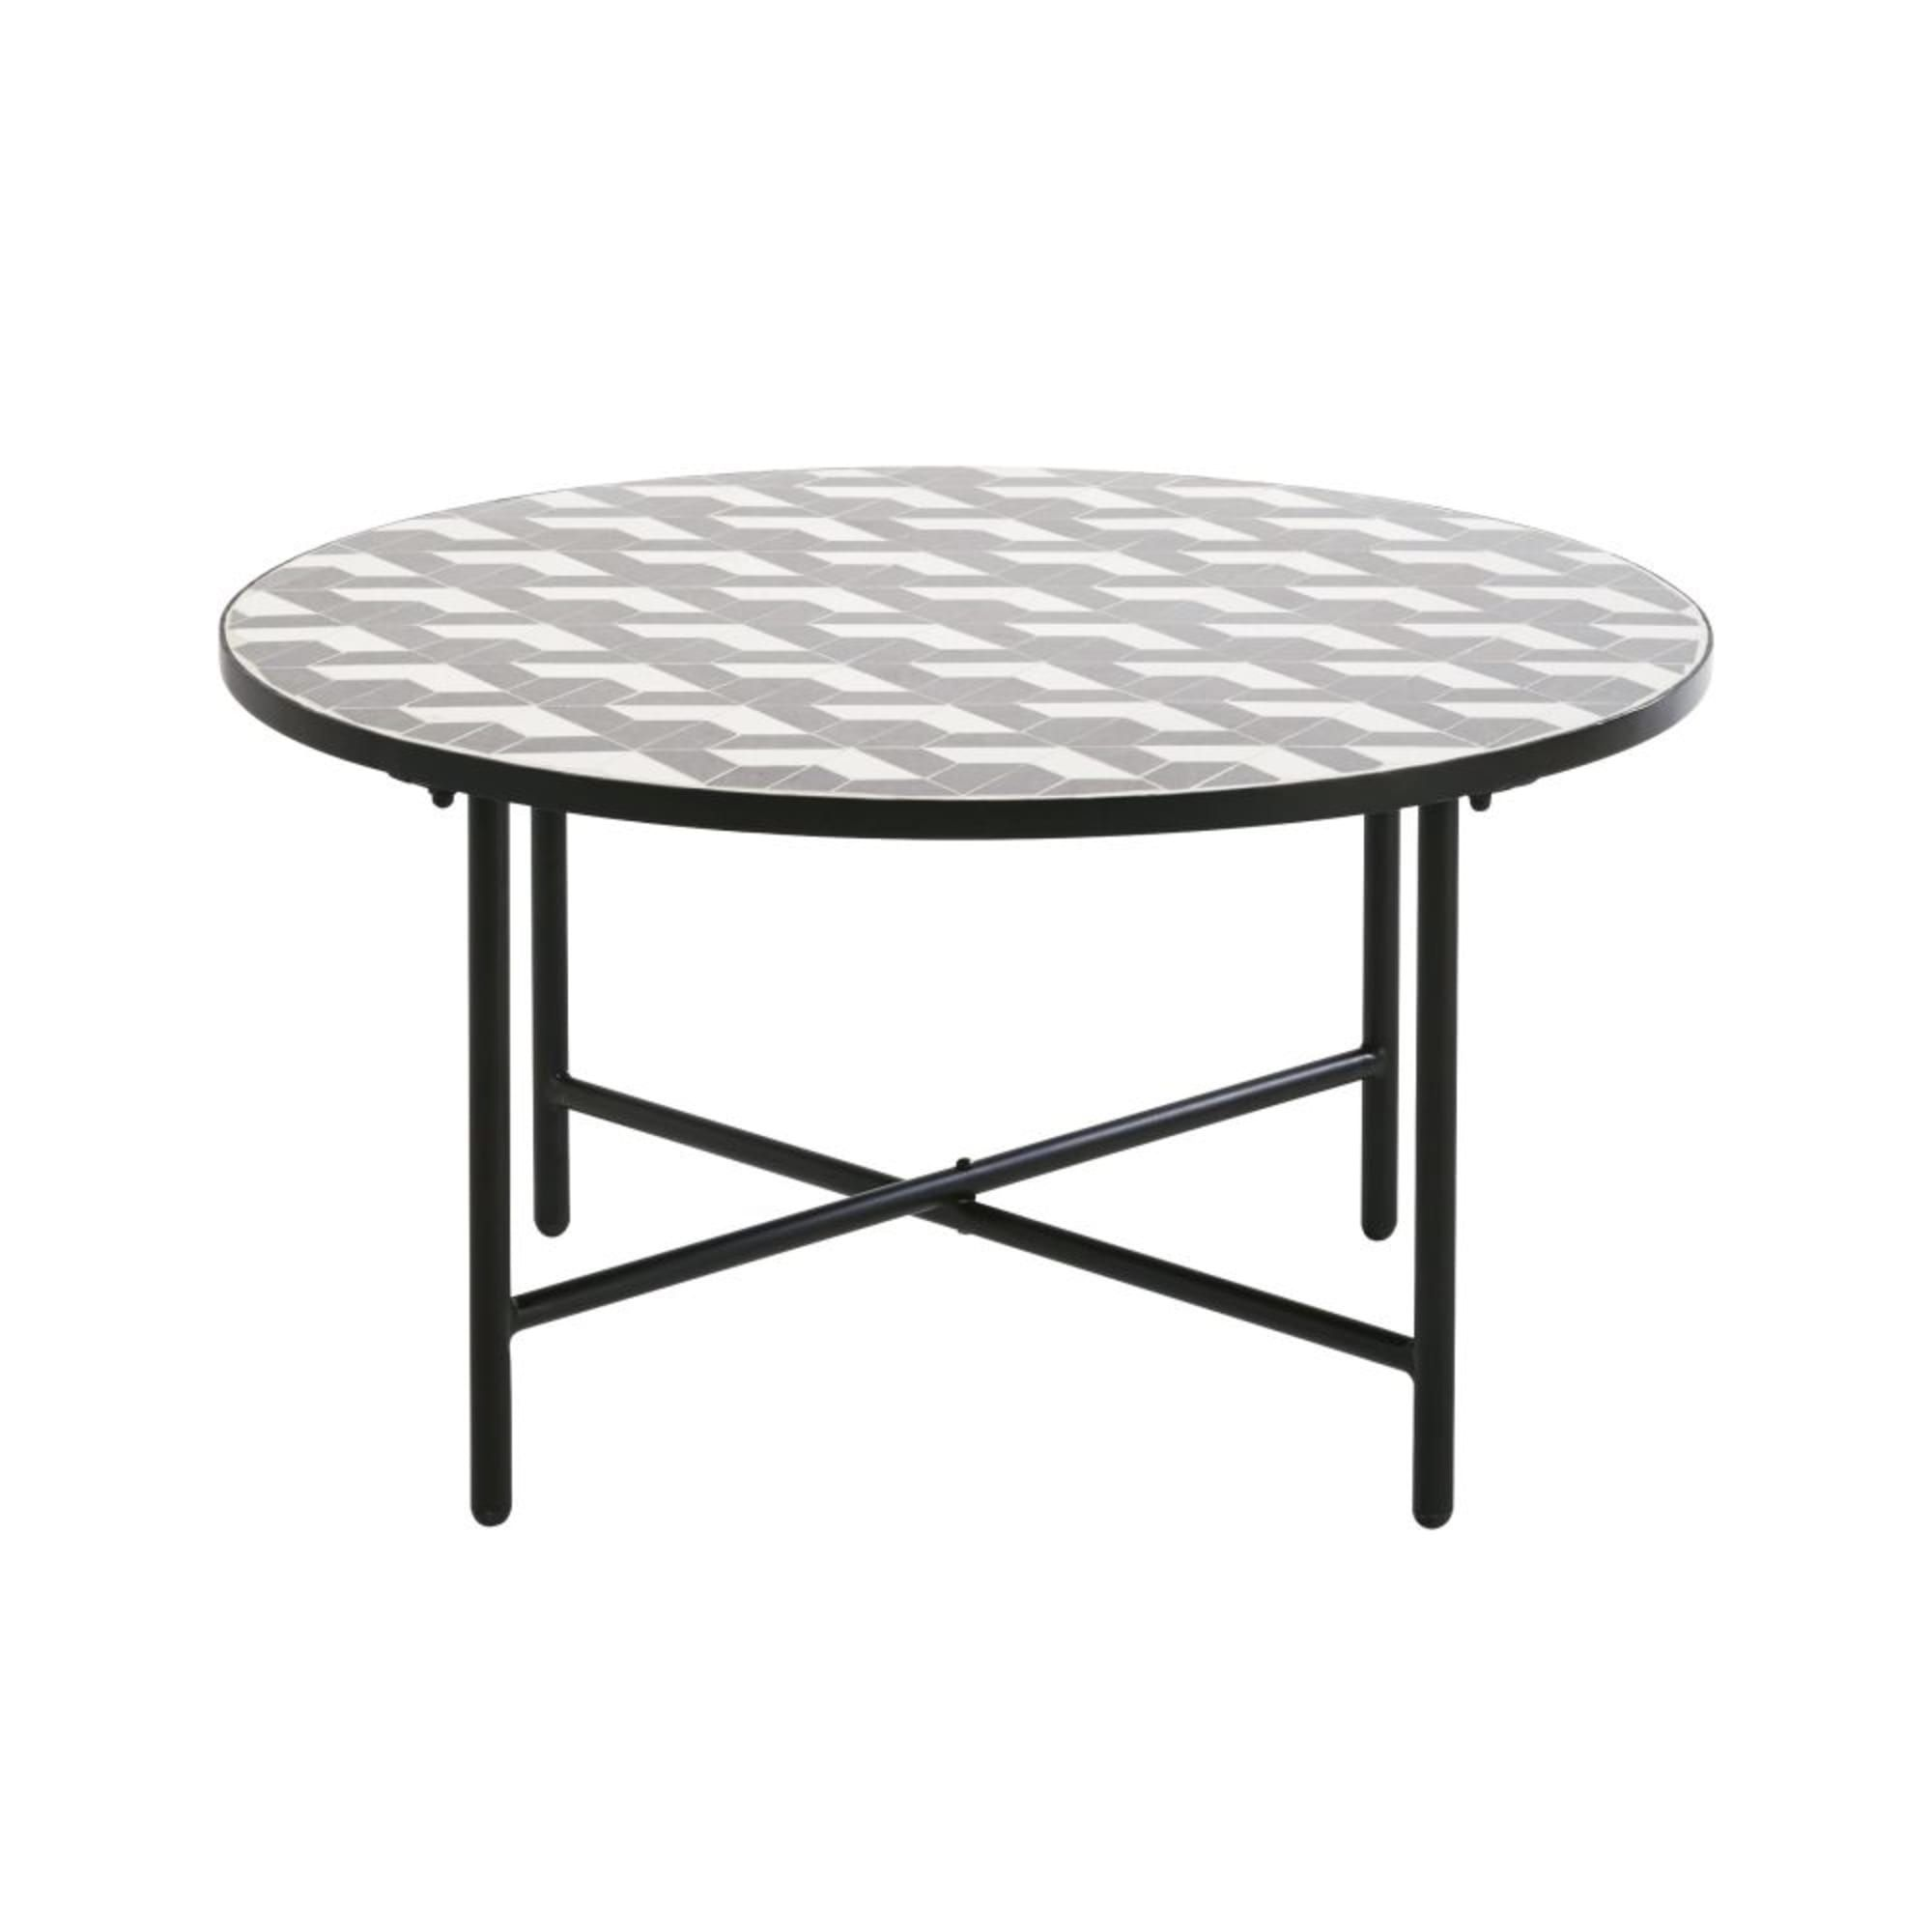 Round White And Grey Ceramic Garden Coffee Table Maisons Du Monde In 2020 Garden Coffee Table Grey Ceramics Sun Lounger Cushions